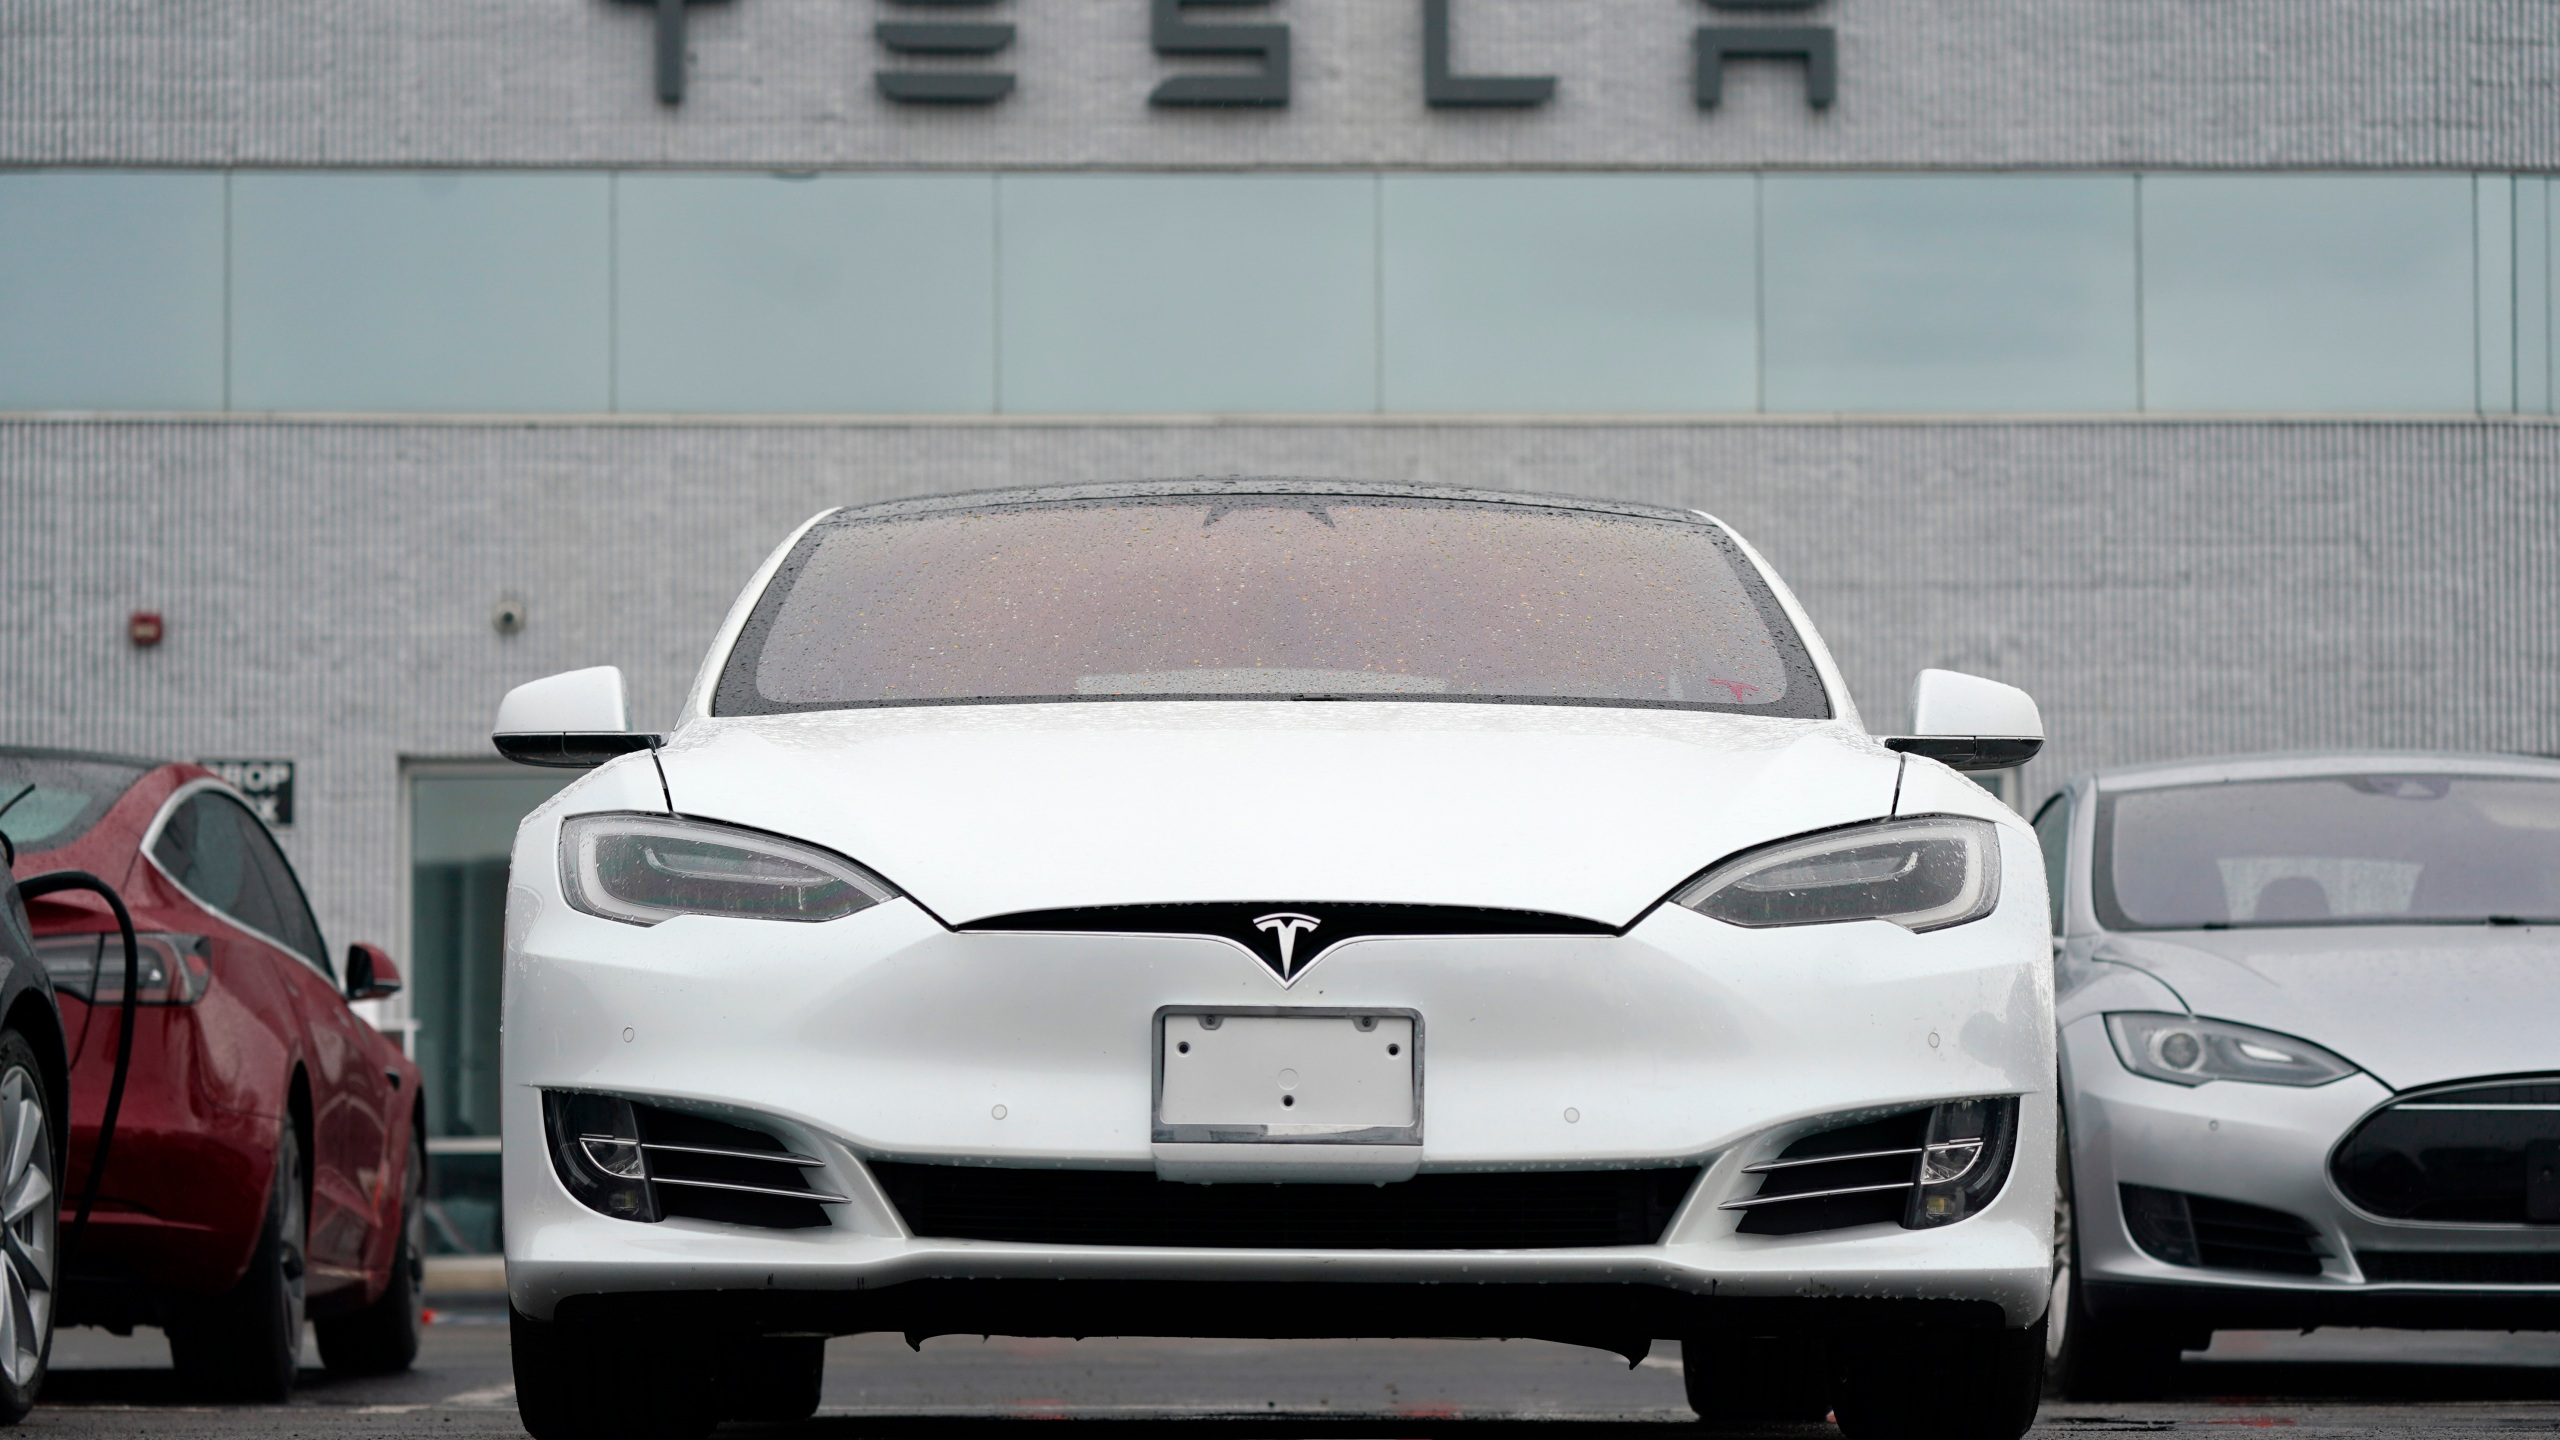 This Sunday, May 9, 2021 file photo shows vehicles at a Tesla location in Littleton, Colo. (AP Photo/David Zalubowski)